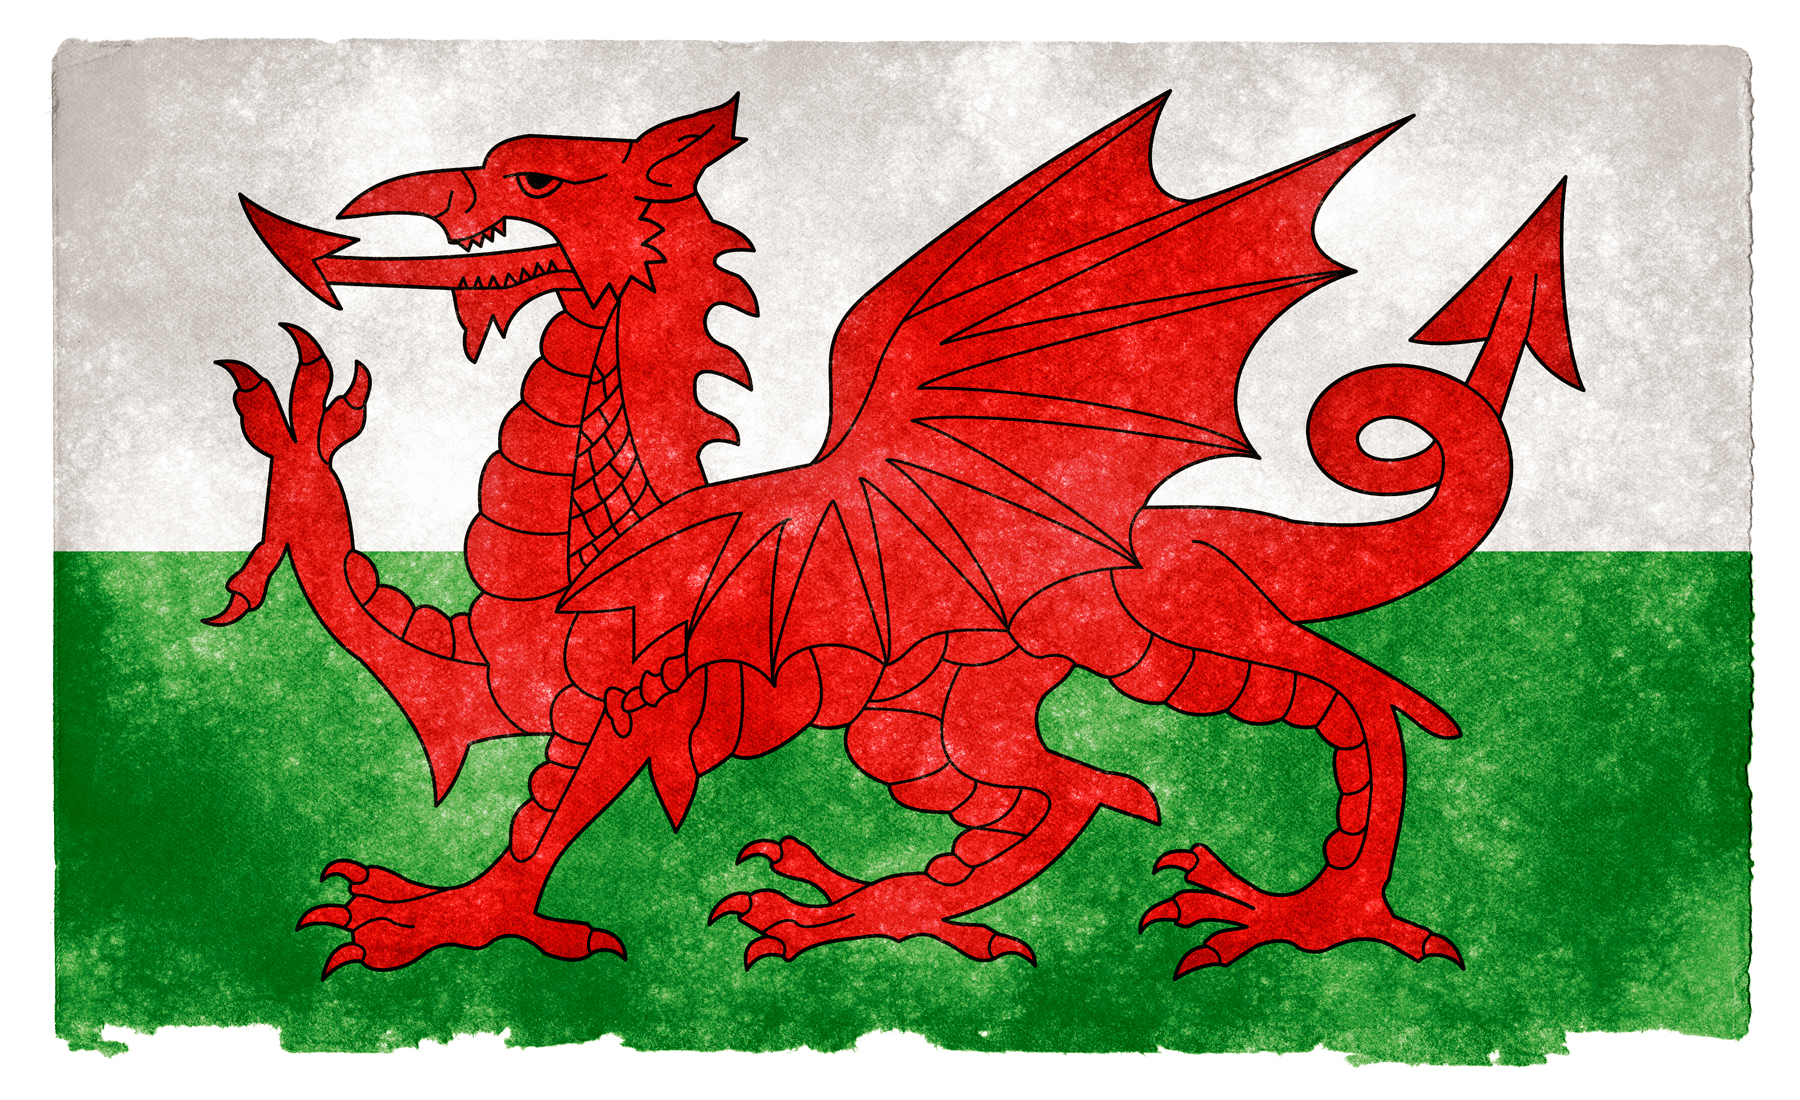 Wales Grunge Flag, Aged, Retro, National, Old, HQ Photo